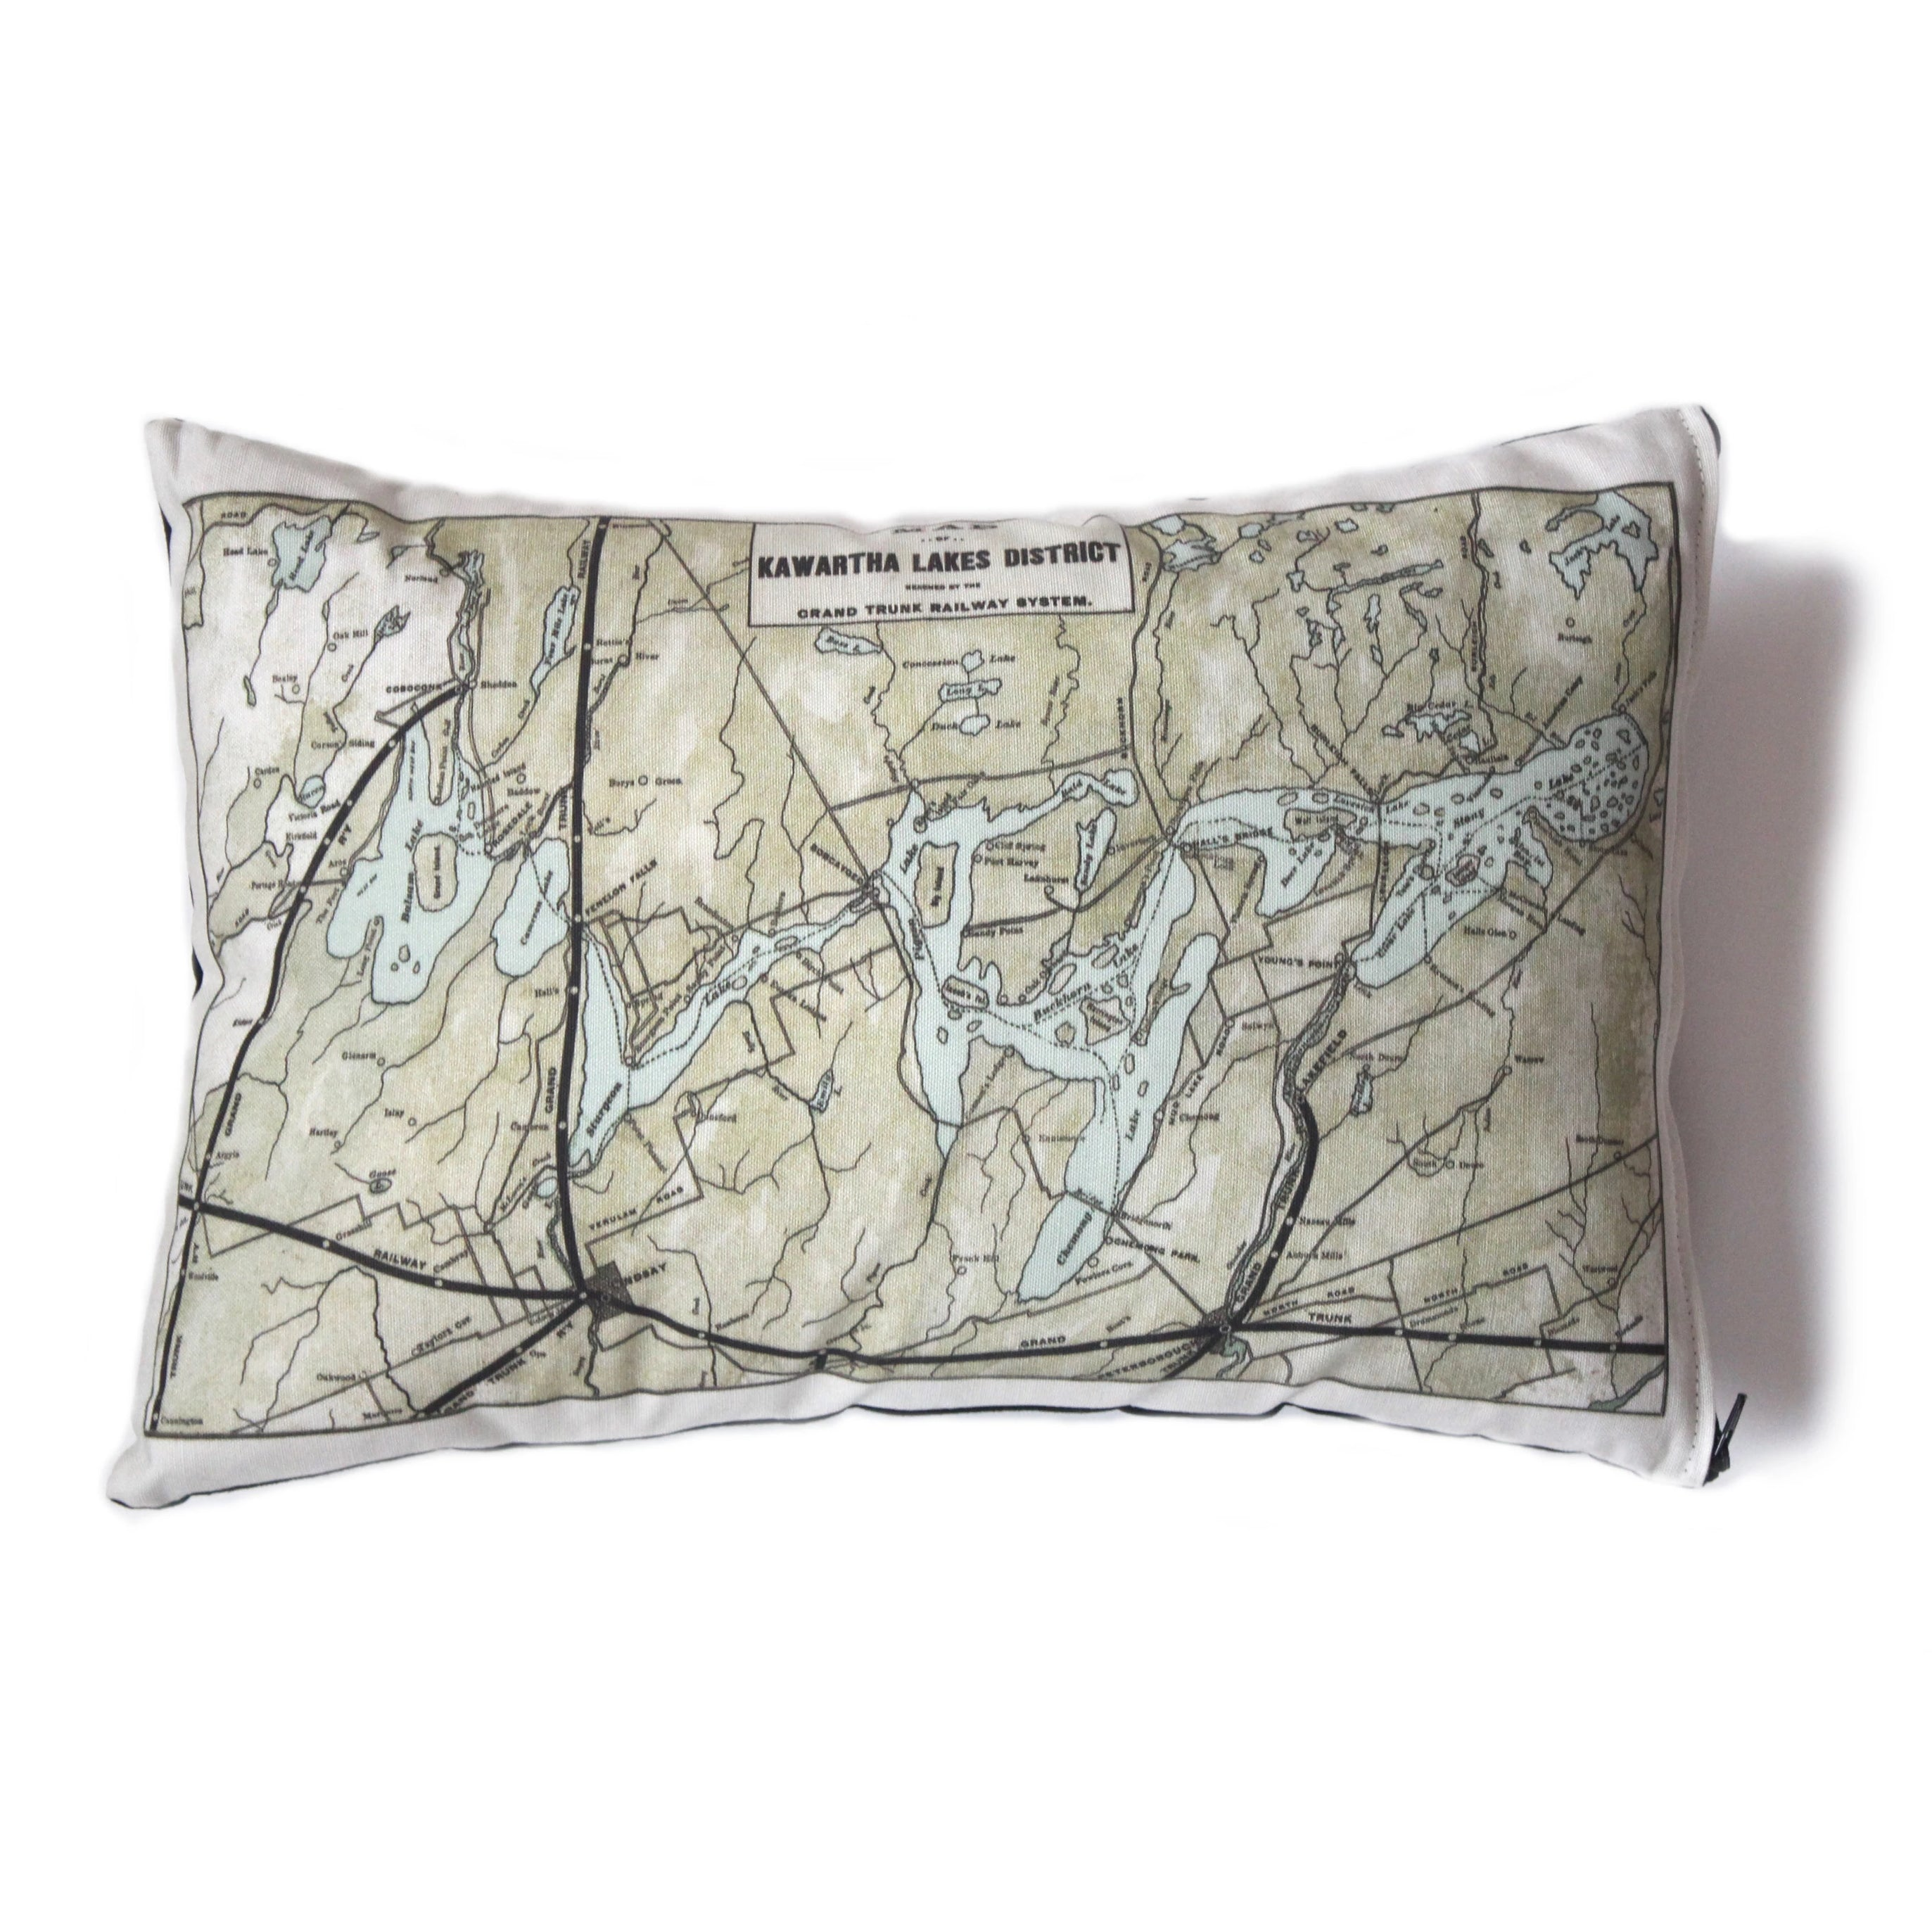 Made in Canada linen pillow case with hand printed vintage map of Kawartha Lakes District in Ontario, Canada.